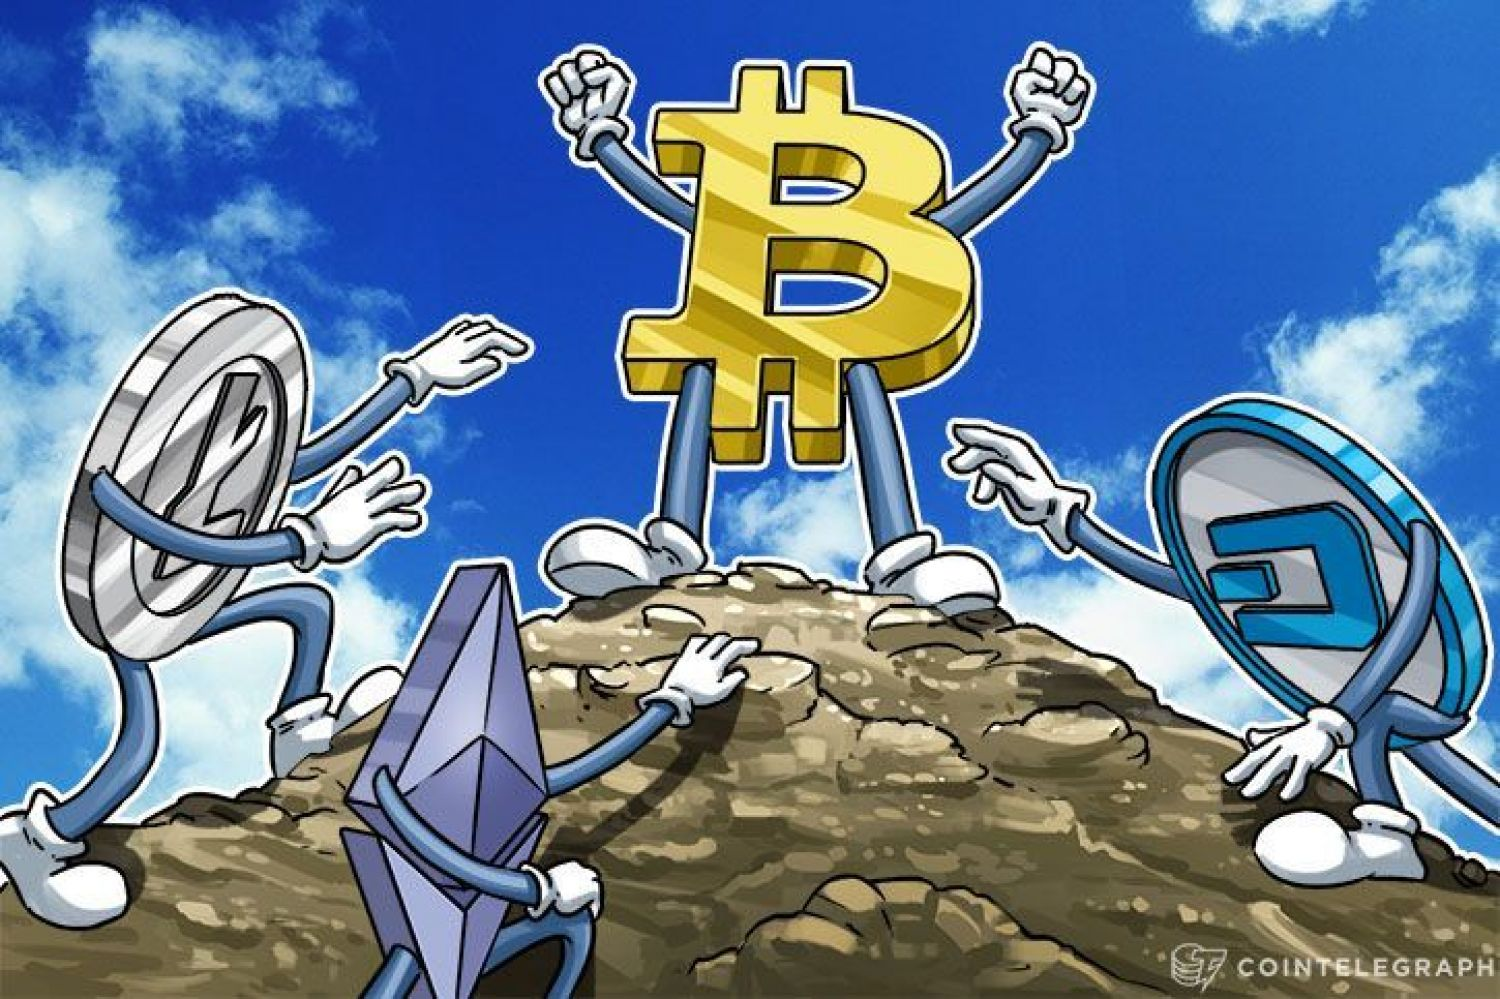 Bitcoin on top of a mountain, Litecoin, Dash and Ethereum are climbing